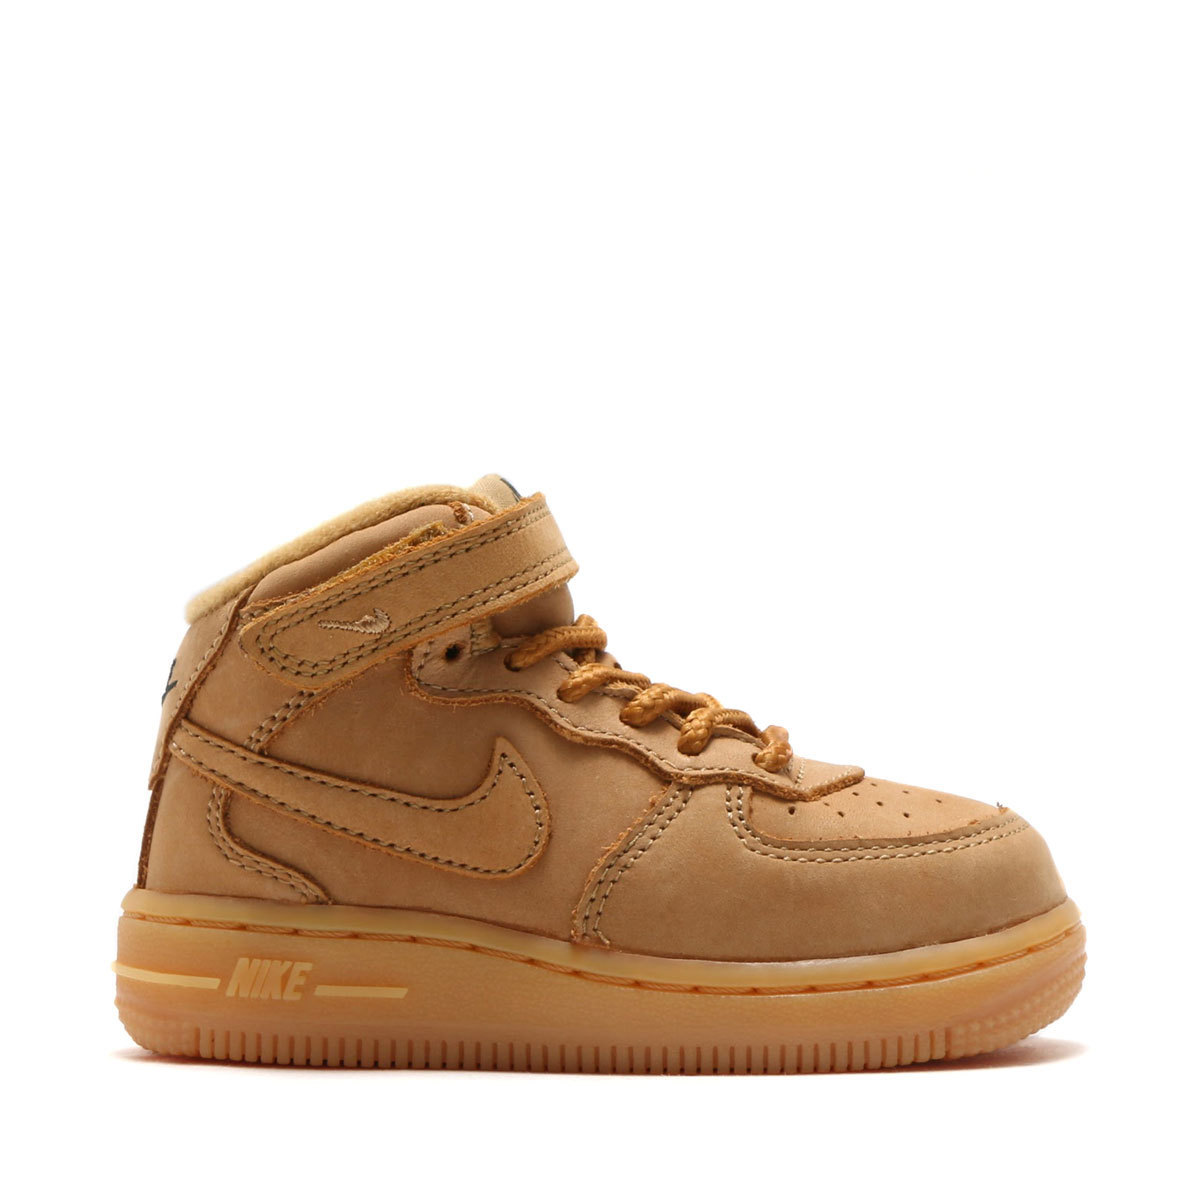 NIKE FORCE 1 MID WB PS エアフォース ウィート ベビー キッズ